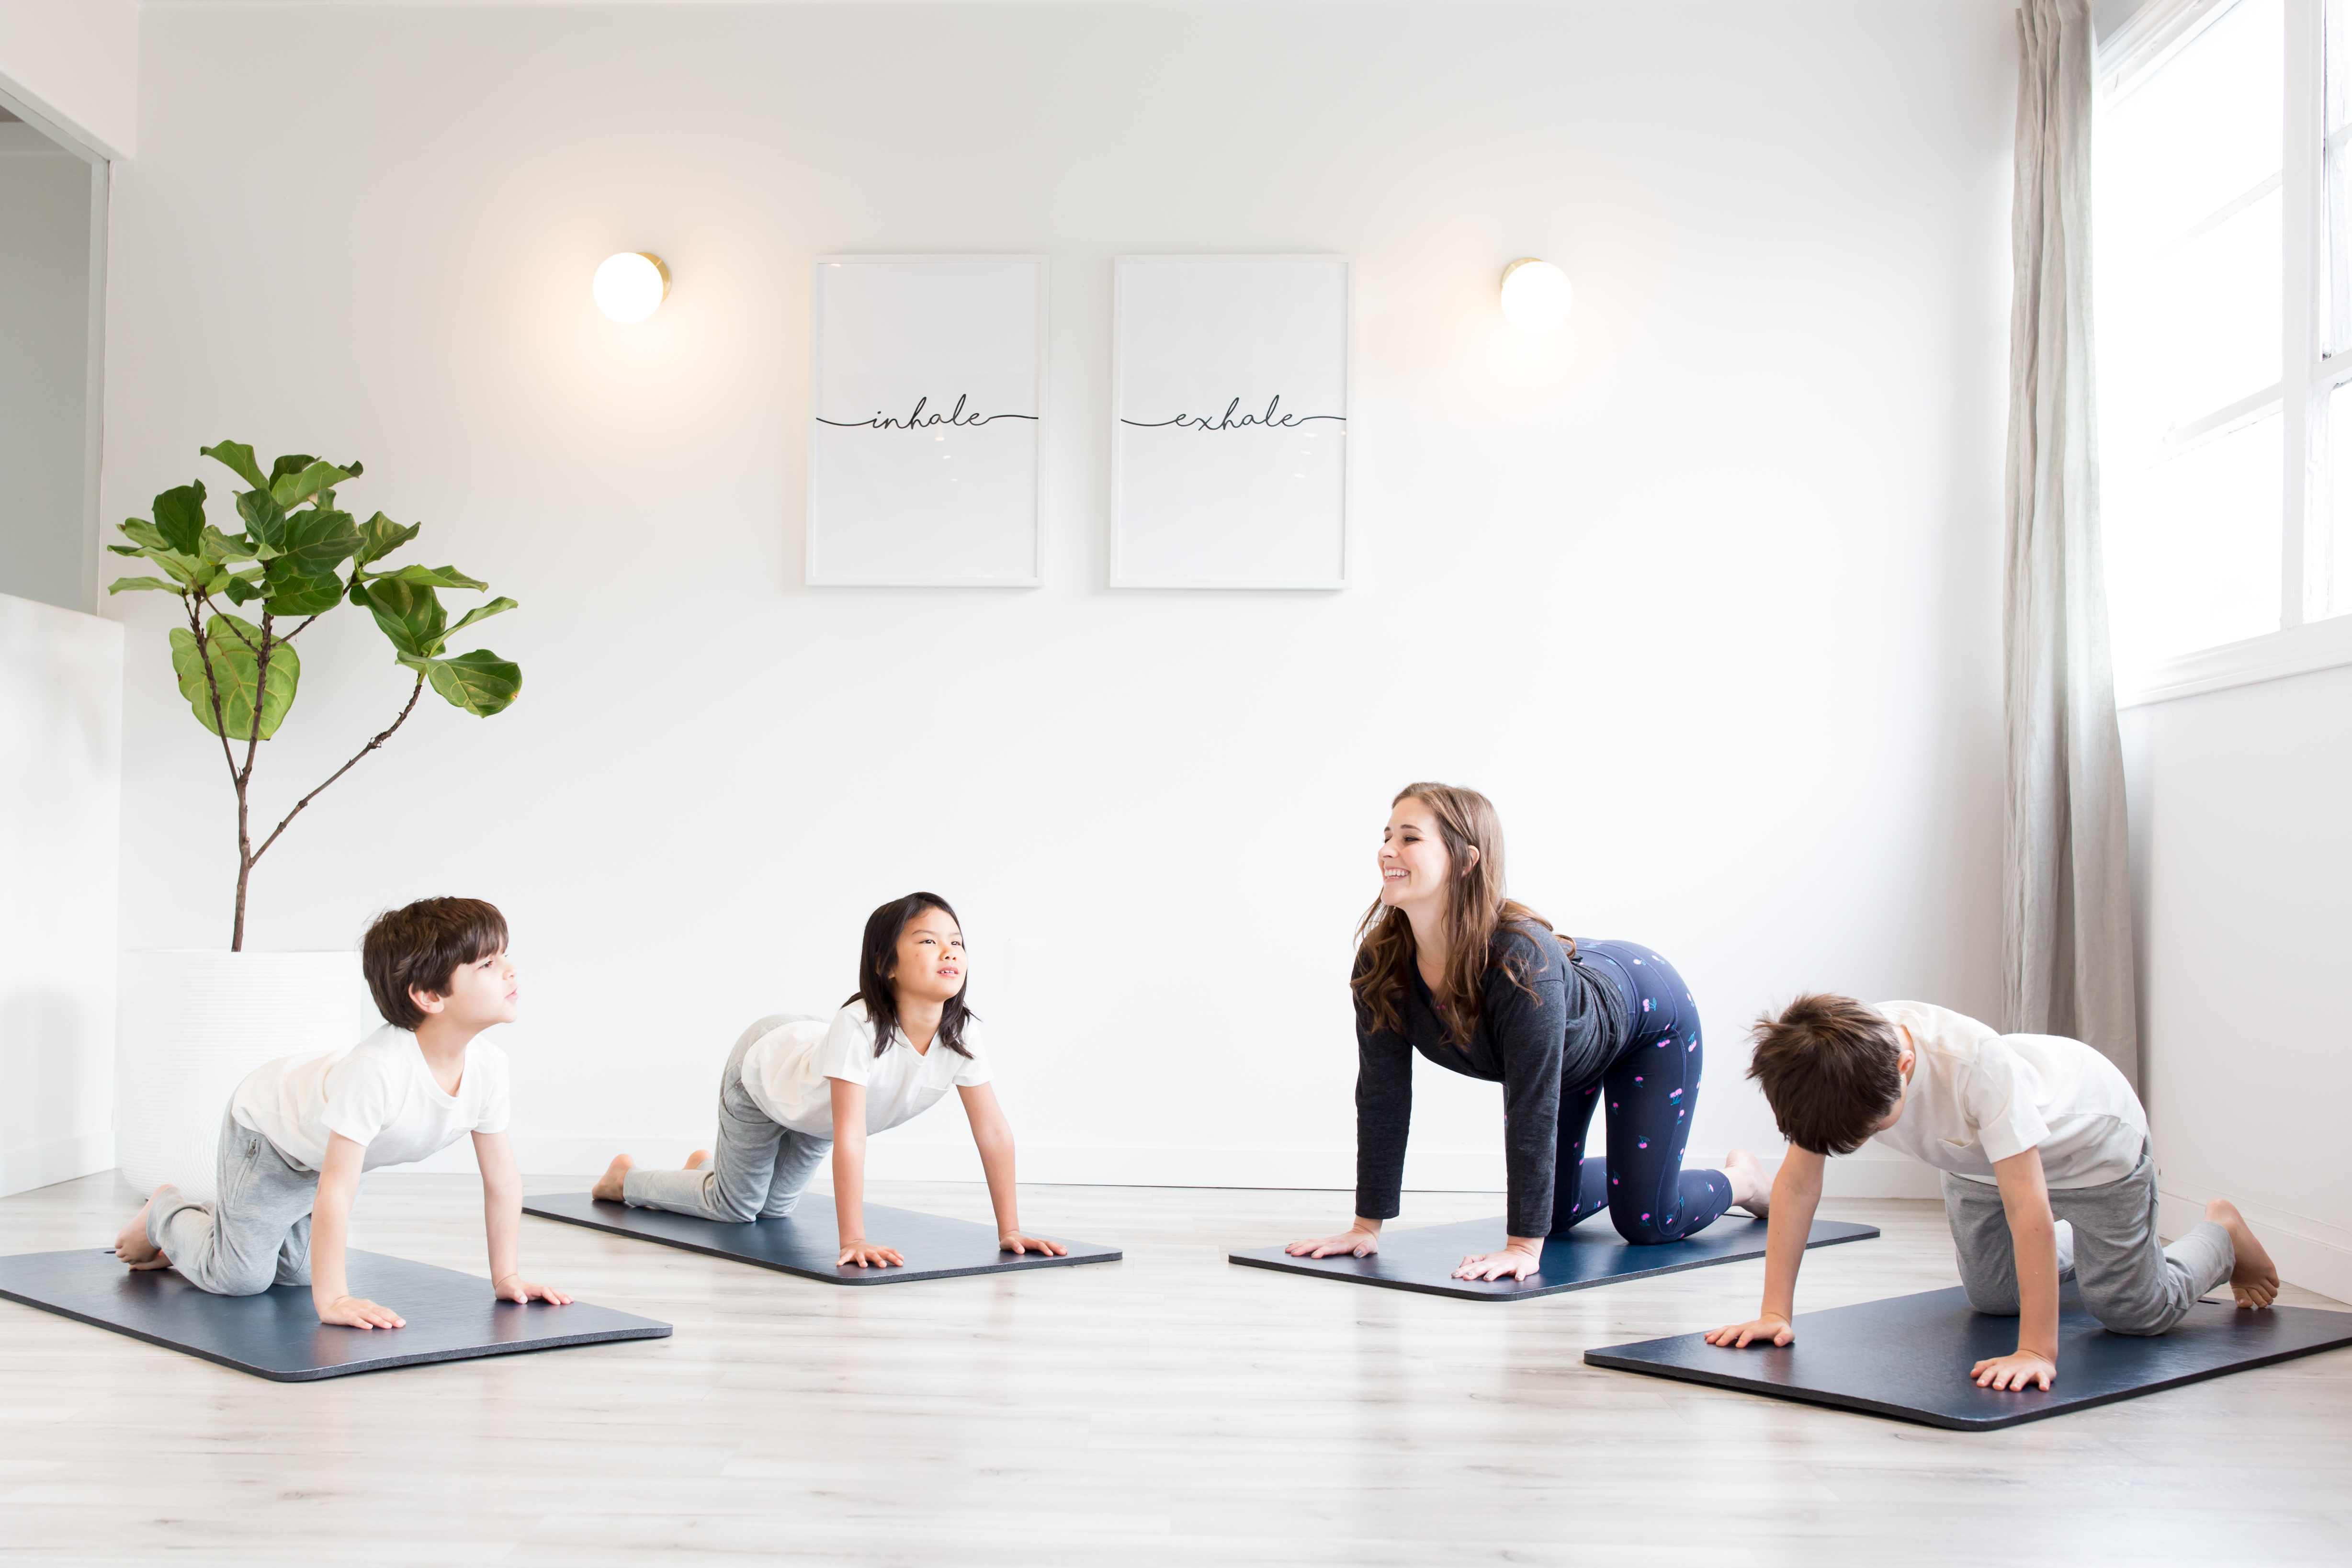 8 Easy Yoga Poses for Kids - No Frill Just Chill